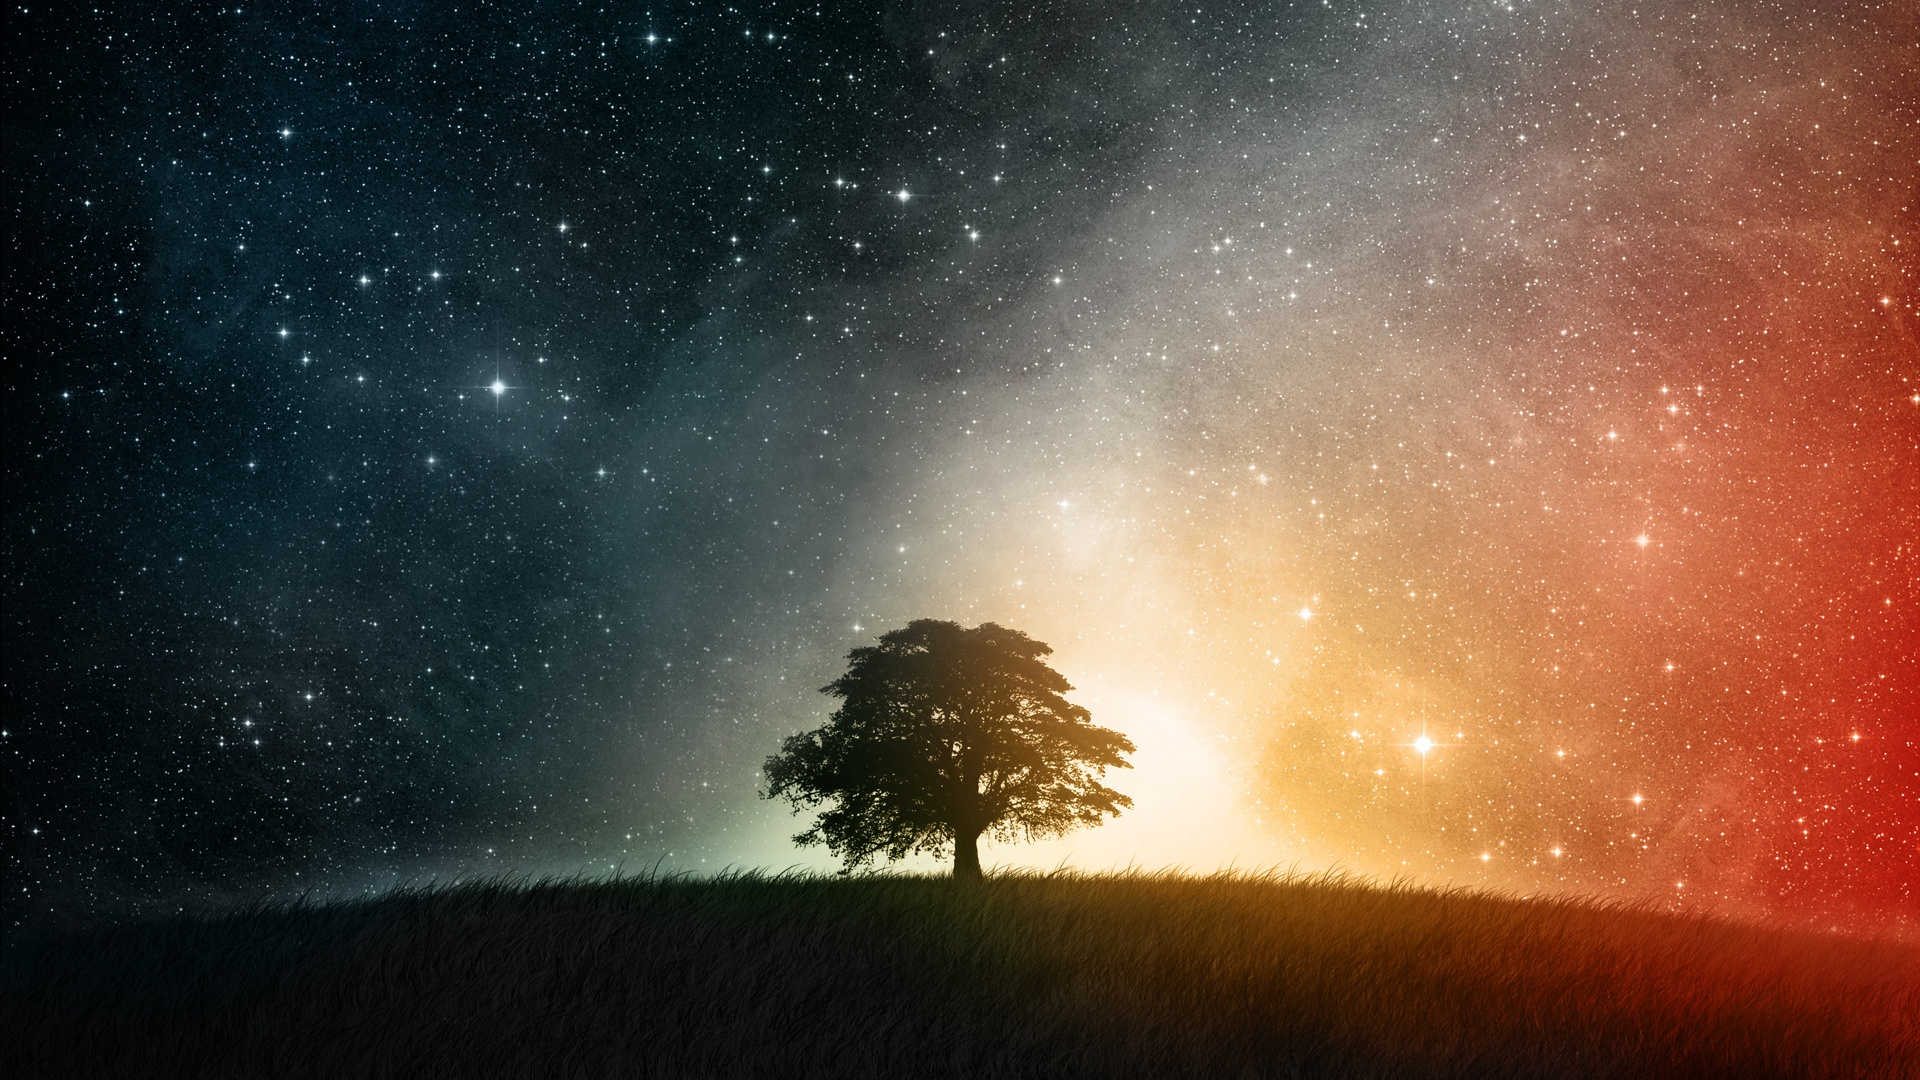 Starry Sky and a Tree Wallpaper Full HD 1491.95 Kb